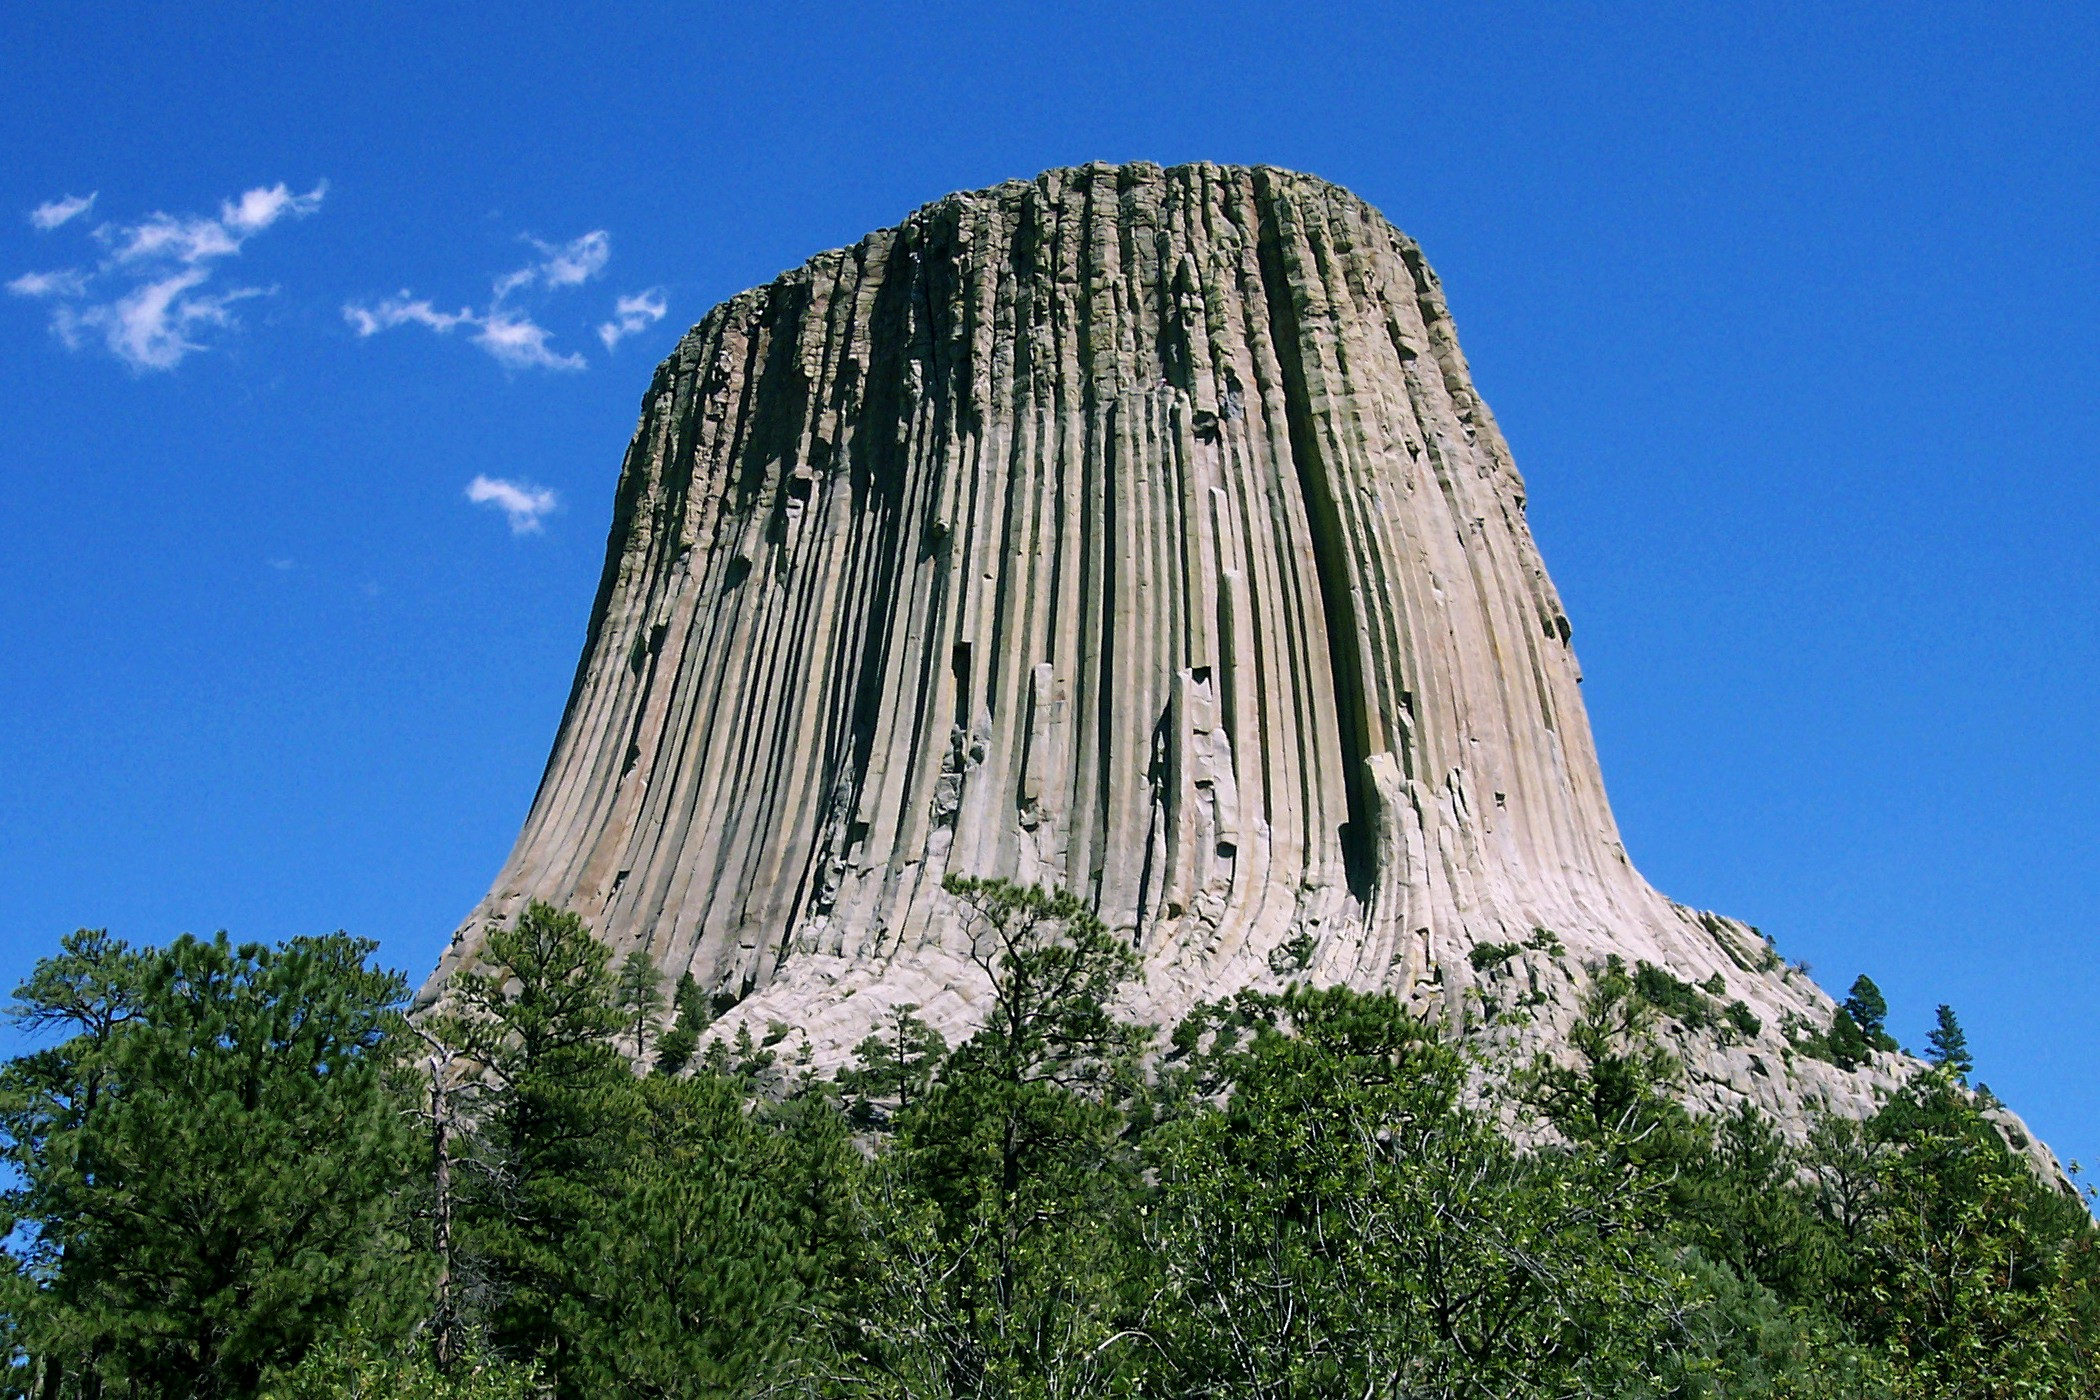 http://upload.wikimedia.org/wikipedia/commons/4/46/Devils_Tower_CROP.jpg